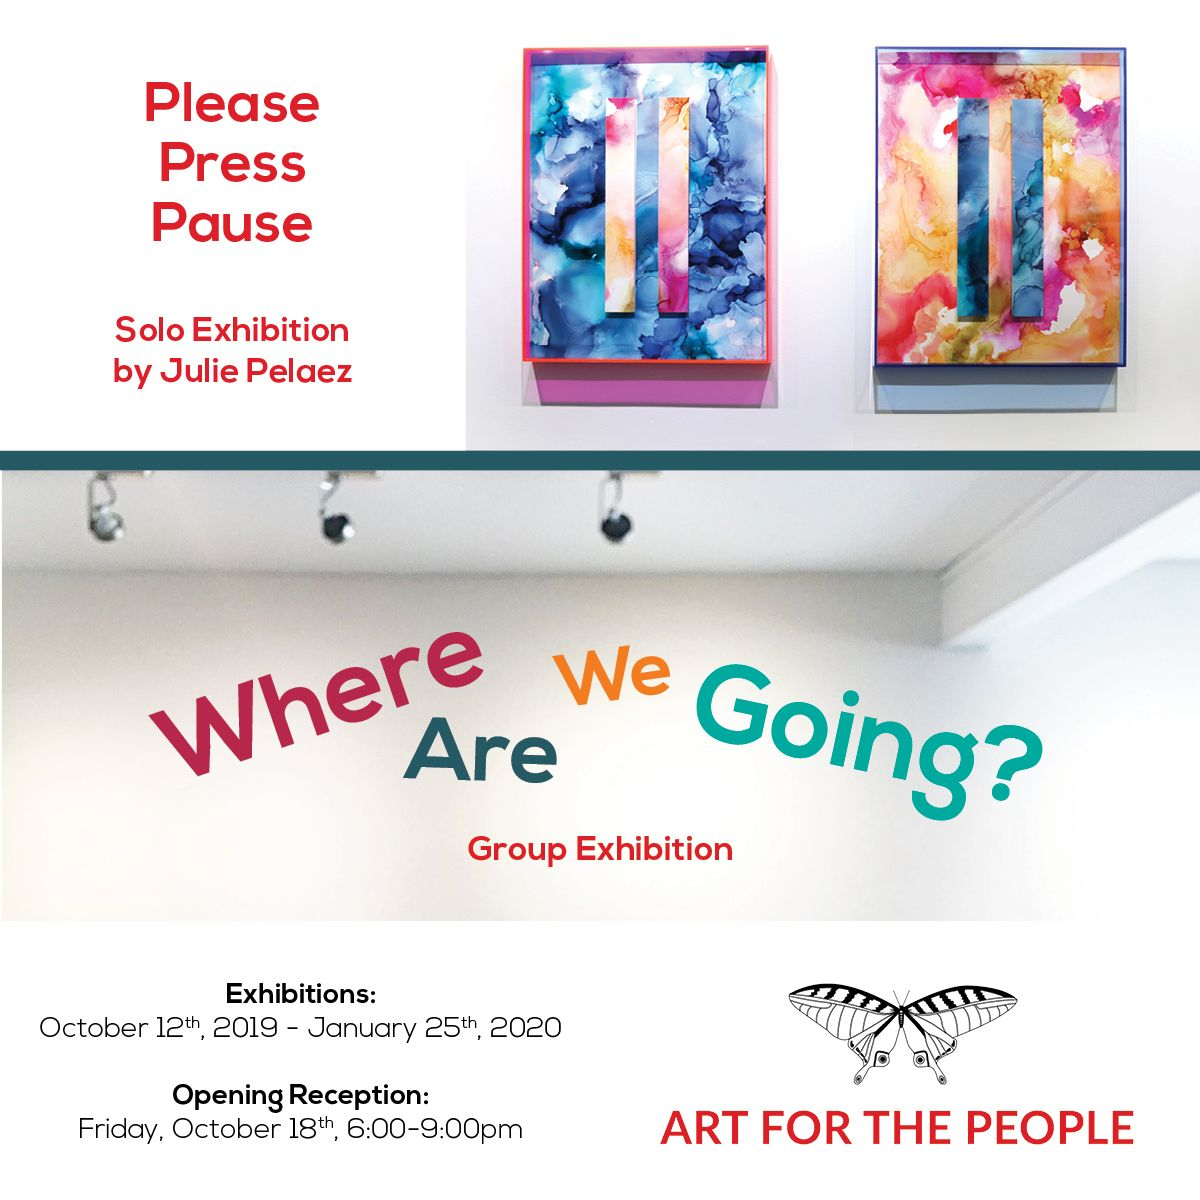 exhibitions - Art for the People - Austin Art - Austin Gifts.jpg